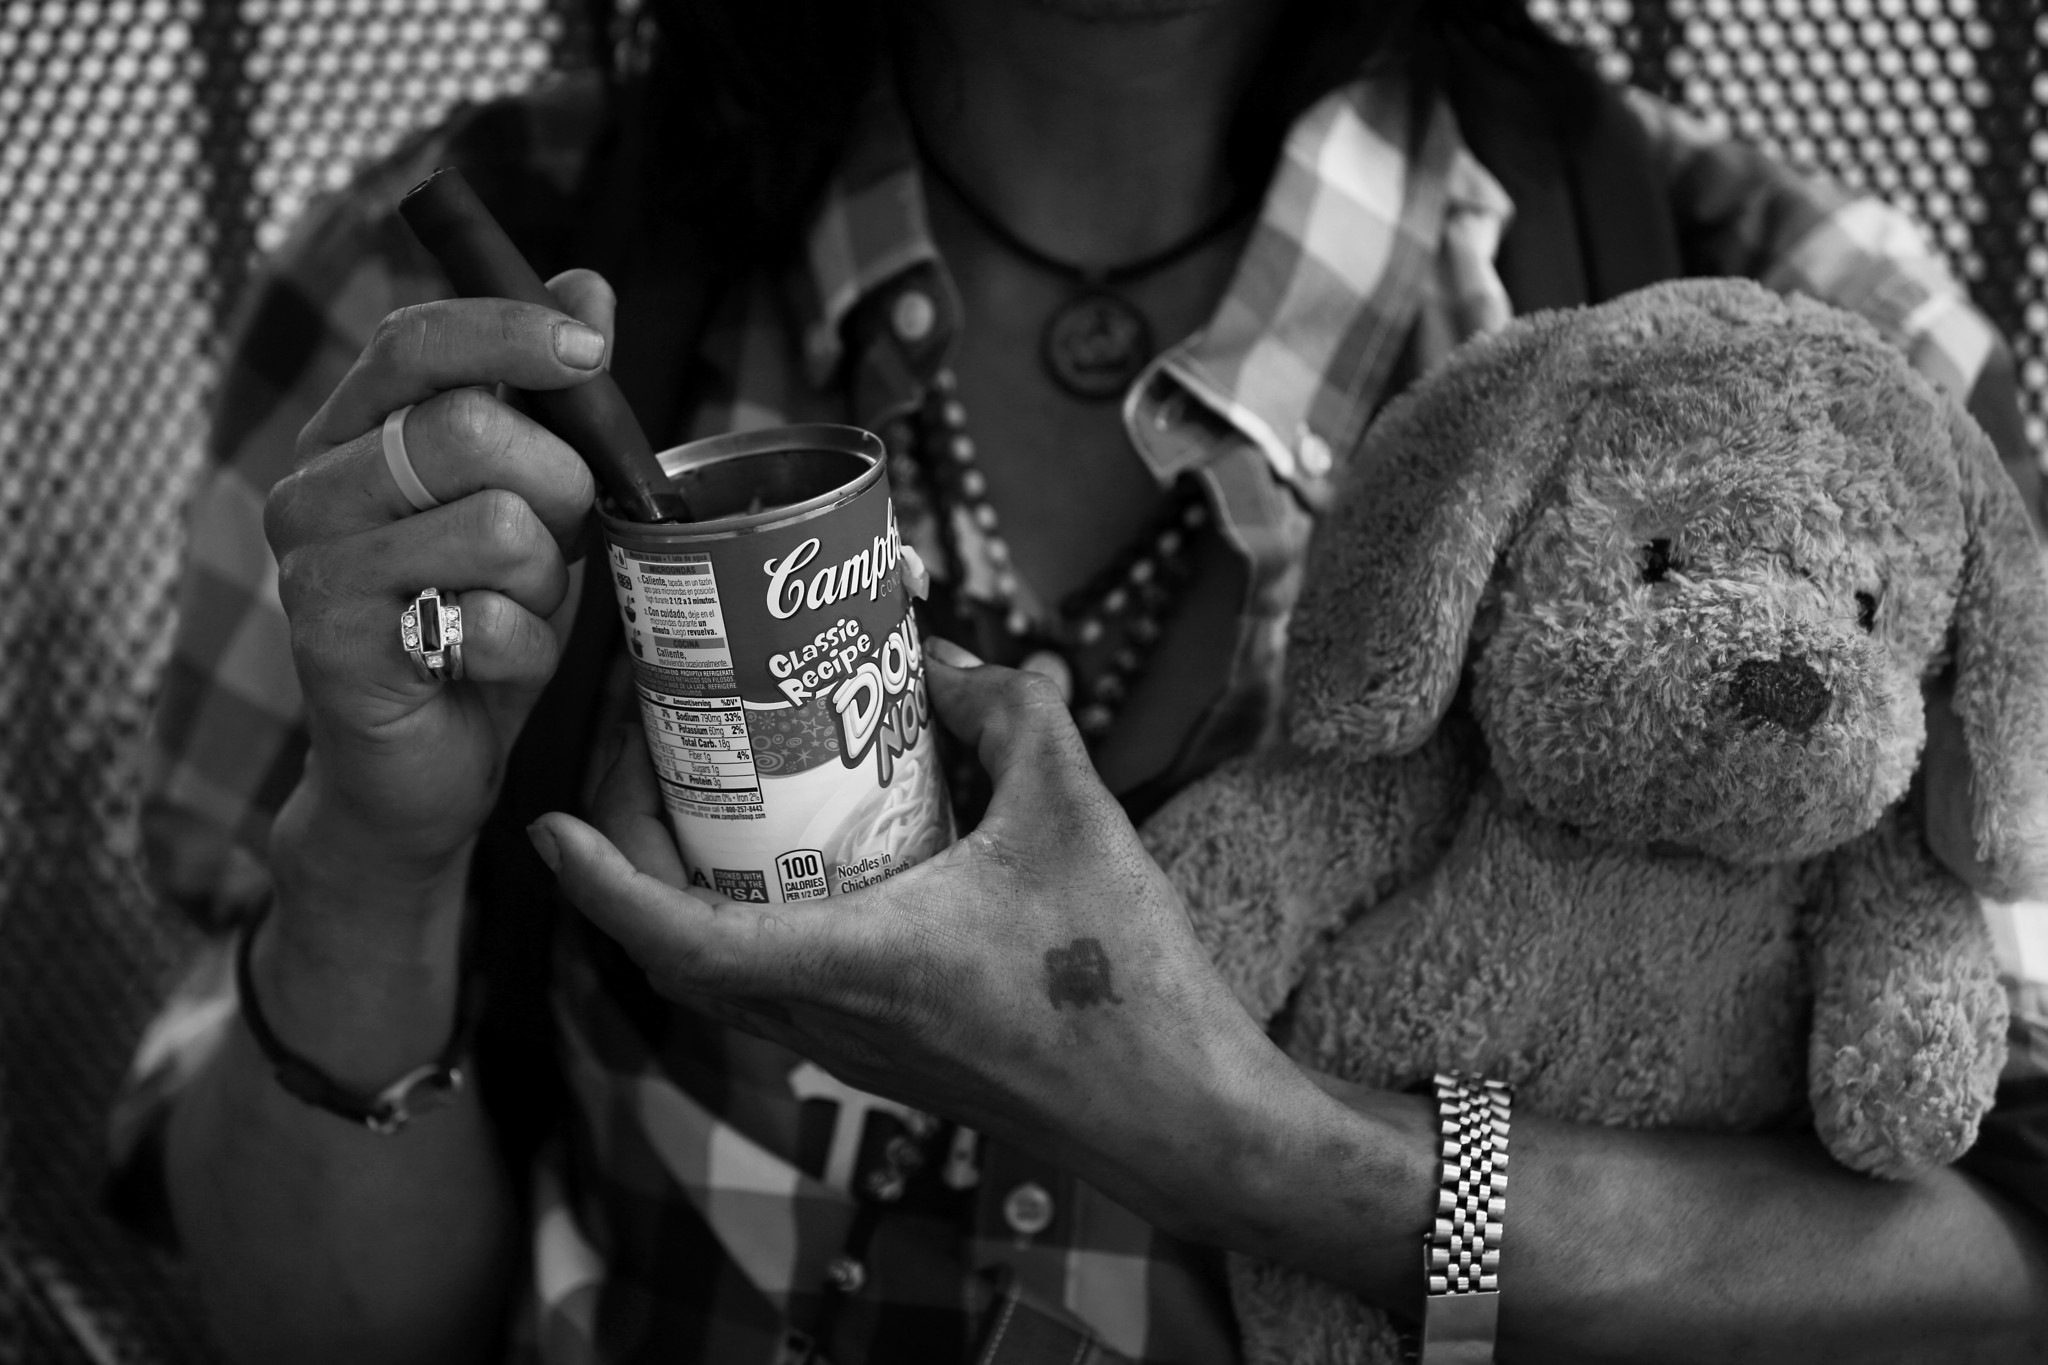 LOS ANGELES, CA OCTOBER 26, 2017: A homeless man eats dinner out of a Campbell's Soup can while he c